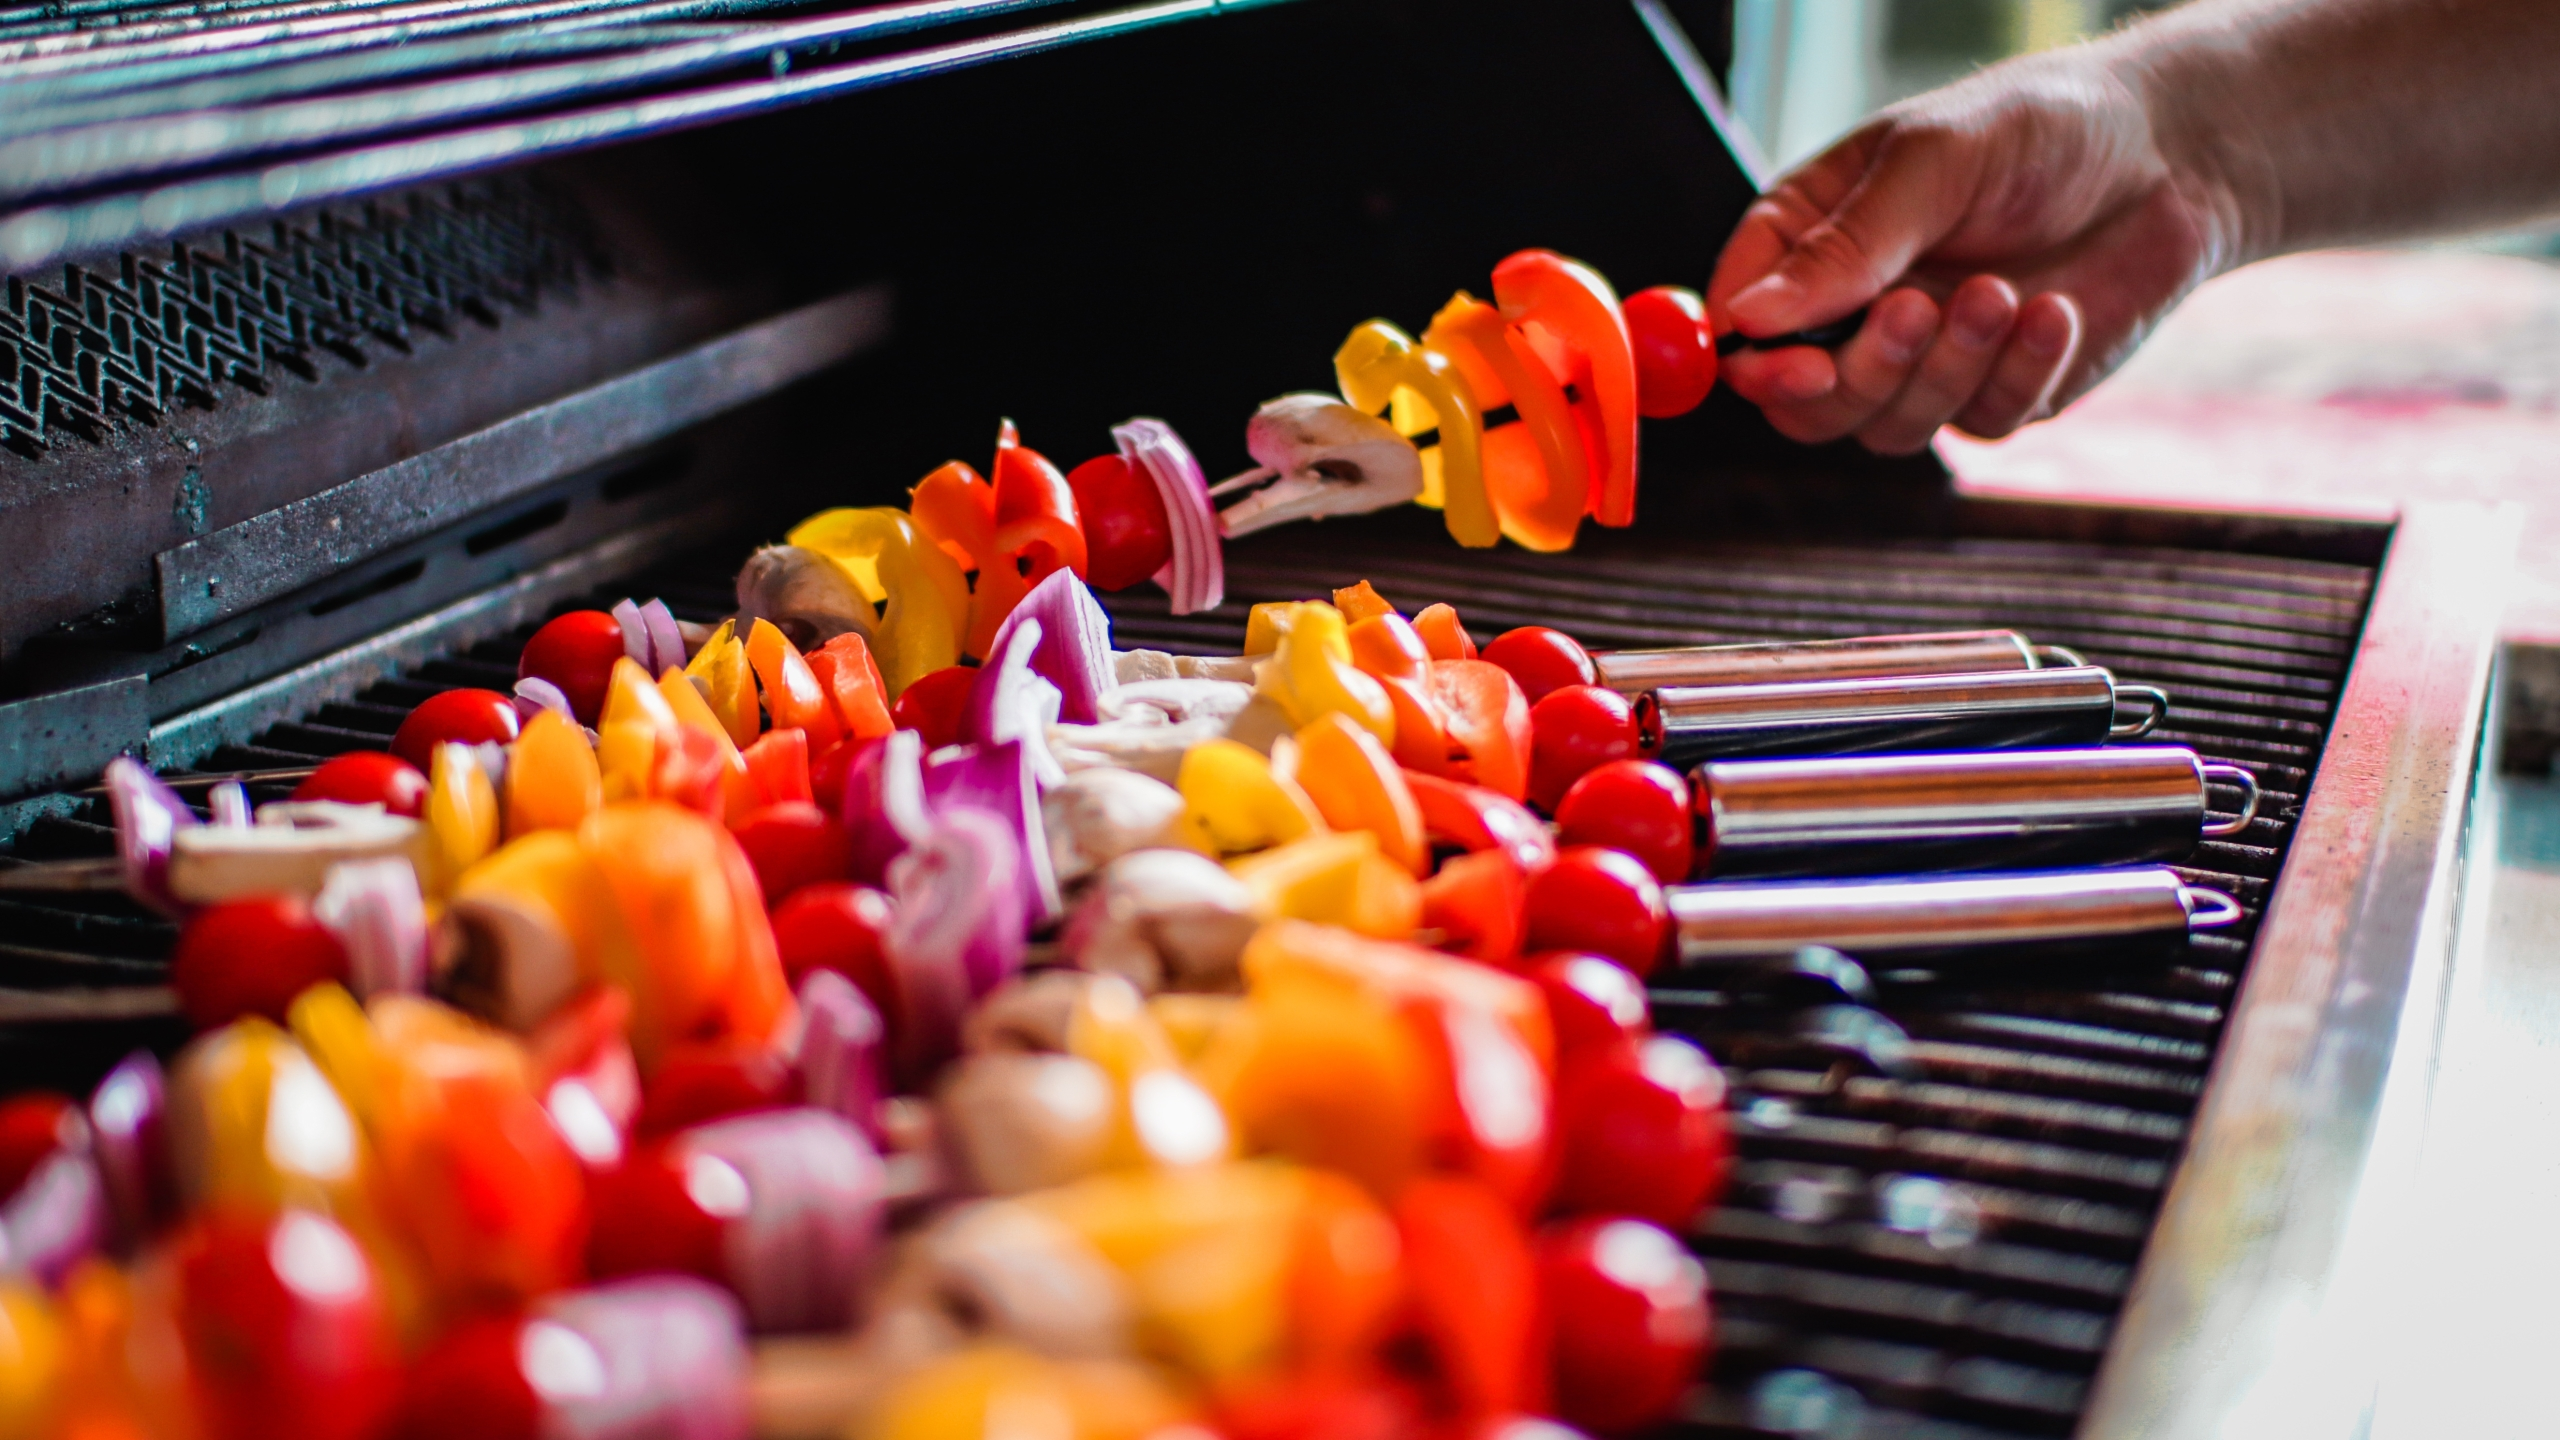 Grilling kabobs on grill